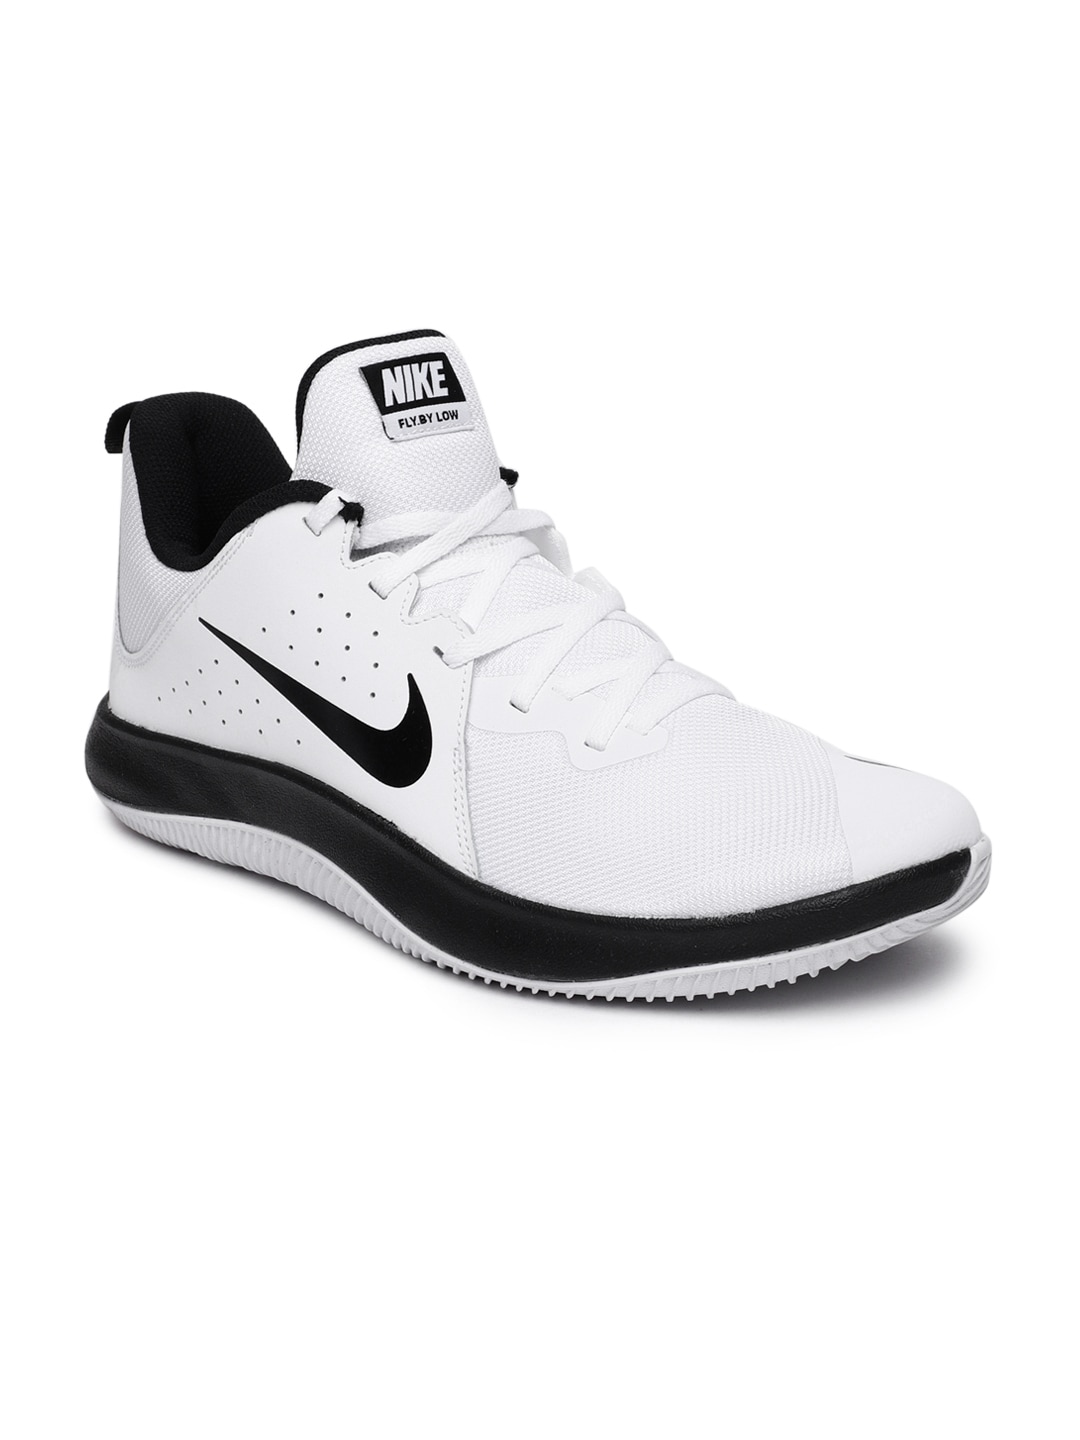 37204a55760652 Nike Basketball Shoes